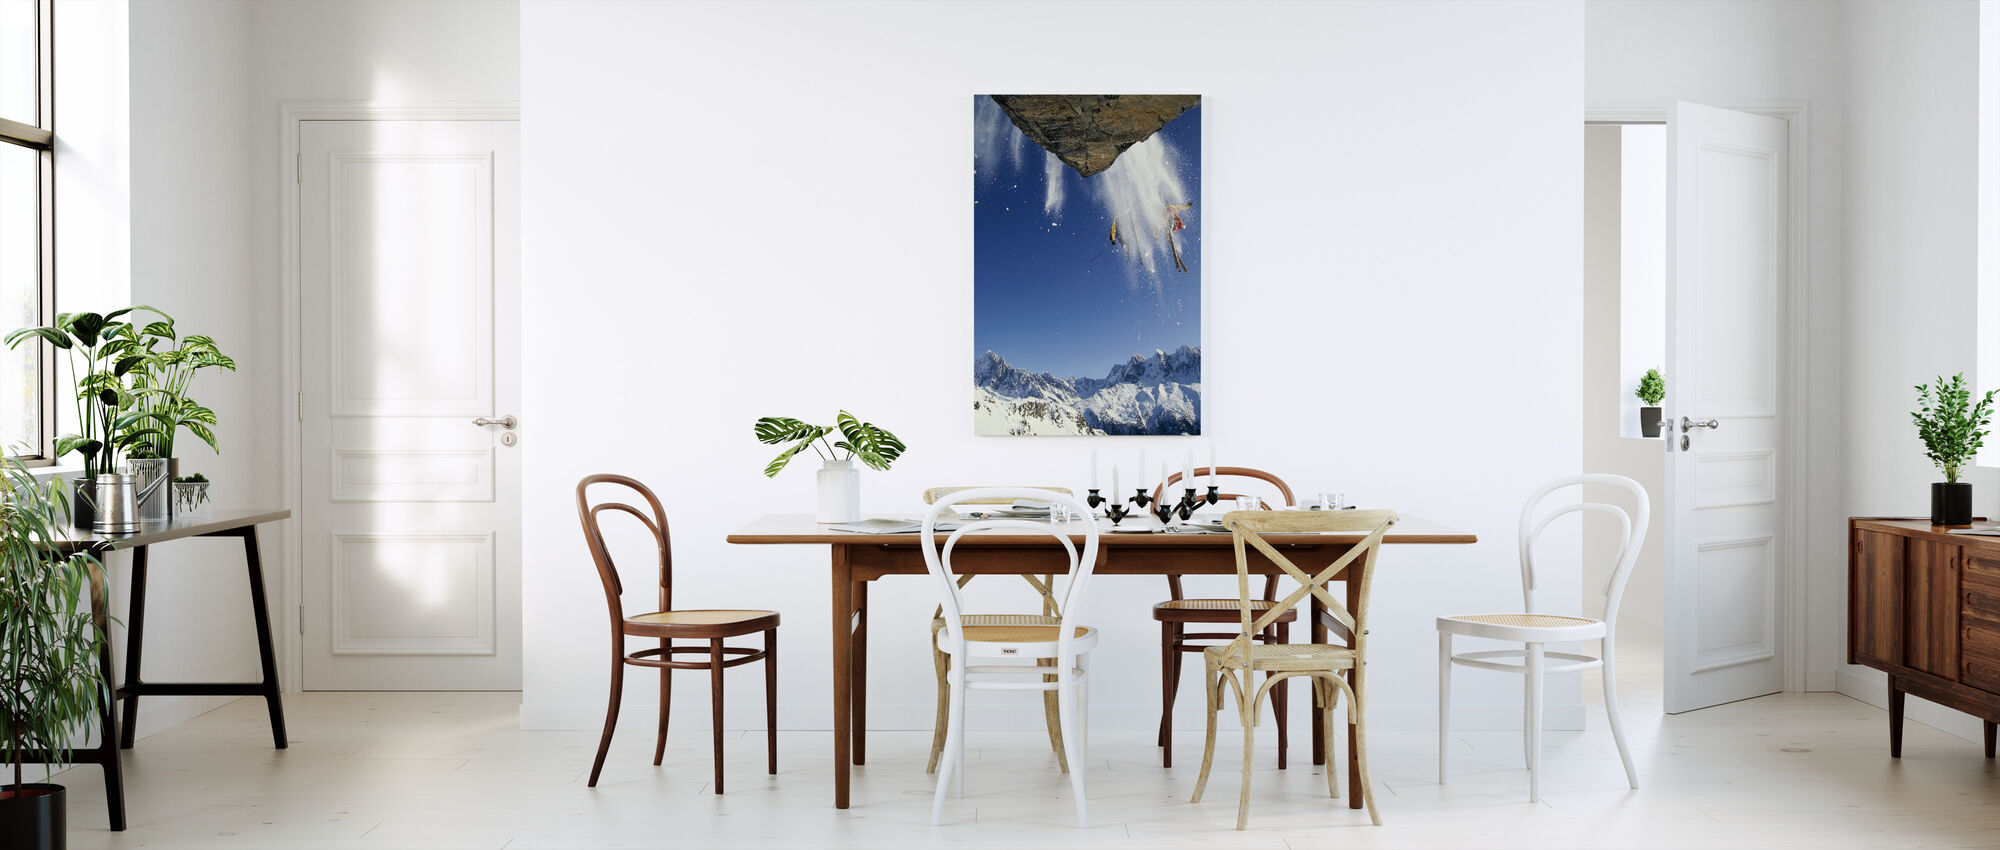 Off Piste Skiing at Mont Blanc - Canvas print - Kitchen